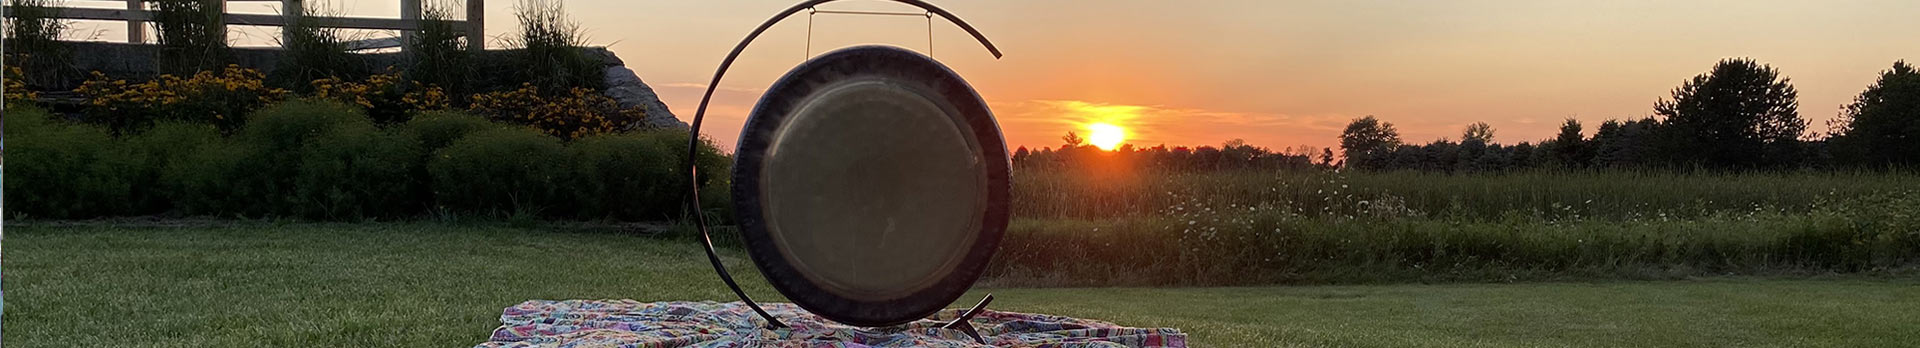 Gong with  sunset